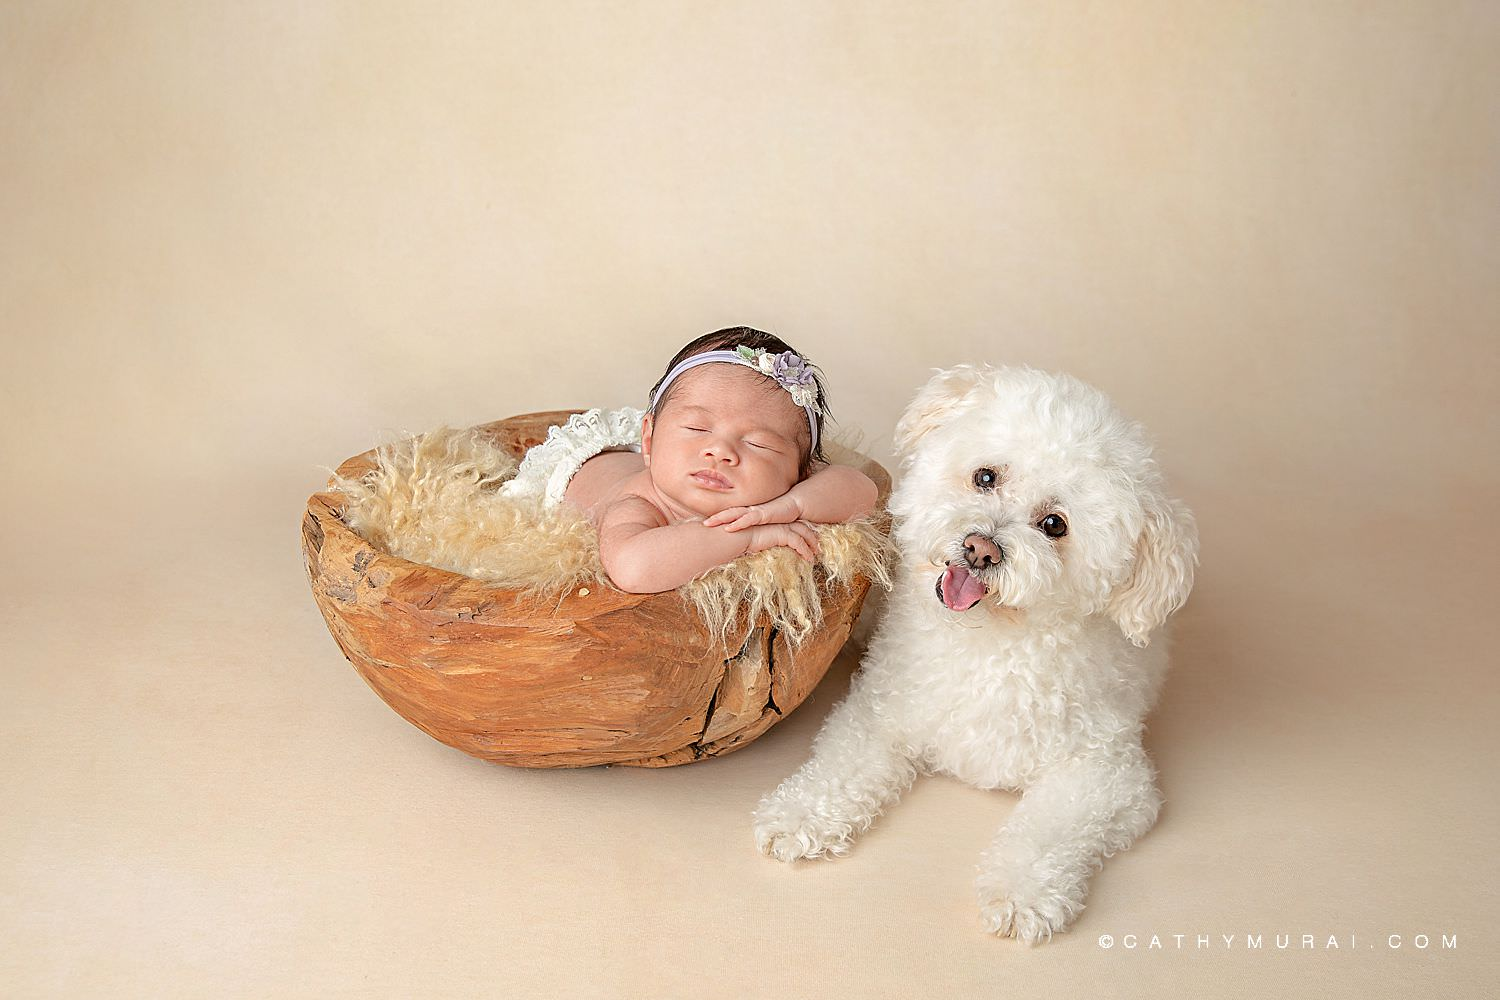 Newborn baby girl wearing a floral headband and white diaper cover sleeps in a wooden bowl on a tan furry blanket next to a white fluffy dog that smiles at the camera.